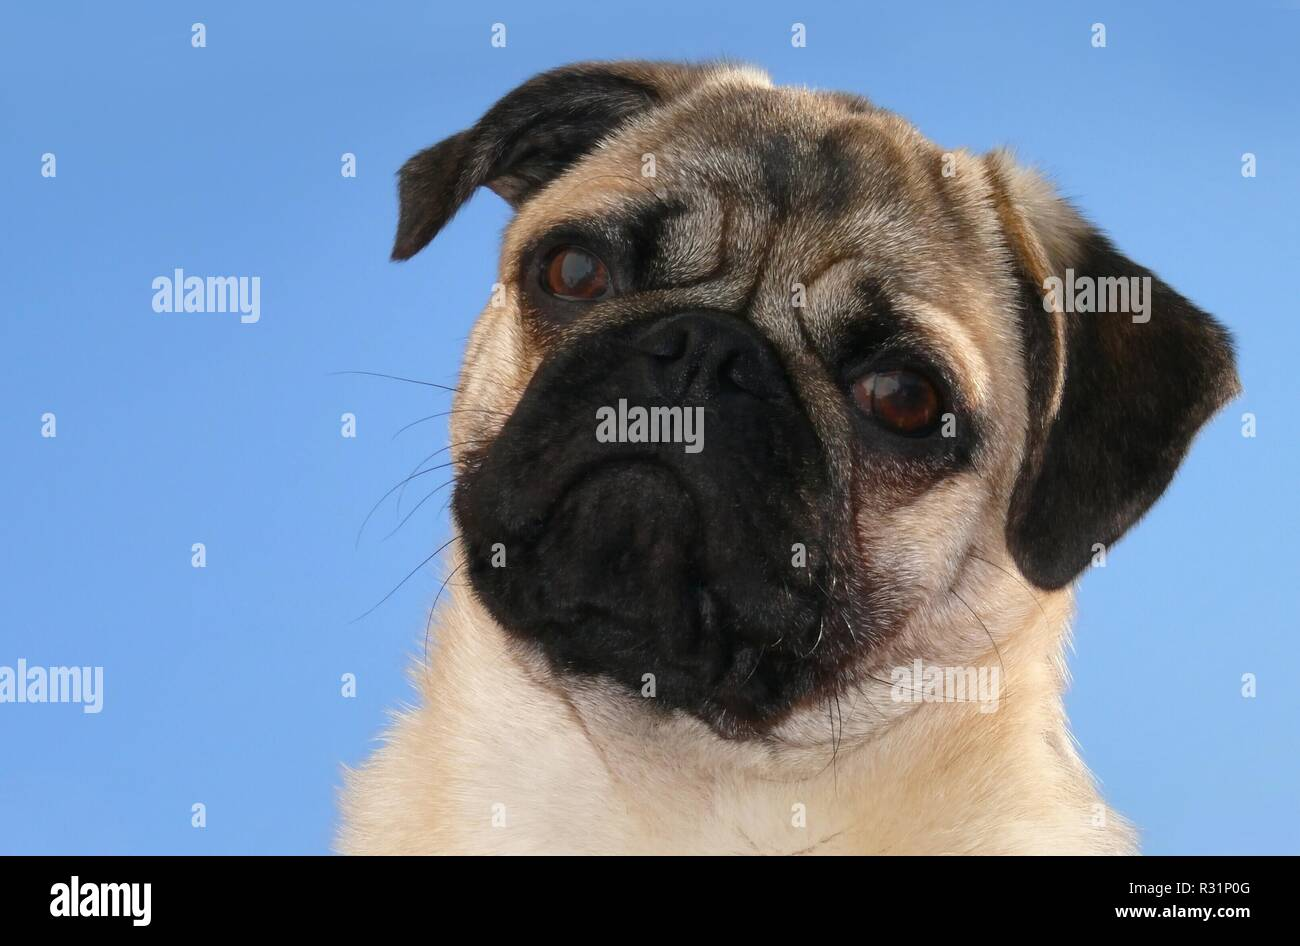 mopsportrait - Stock Image